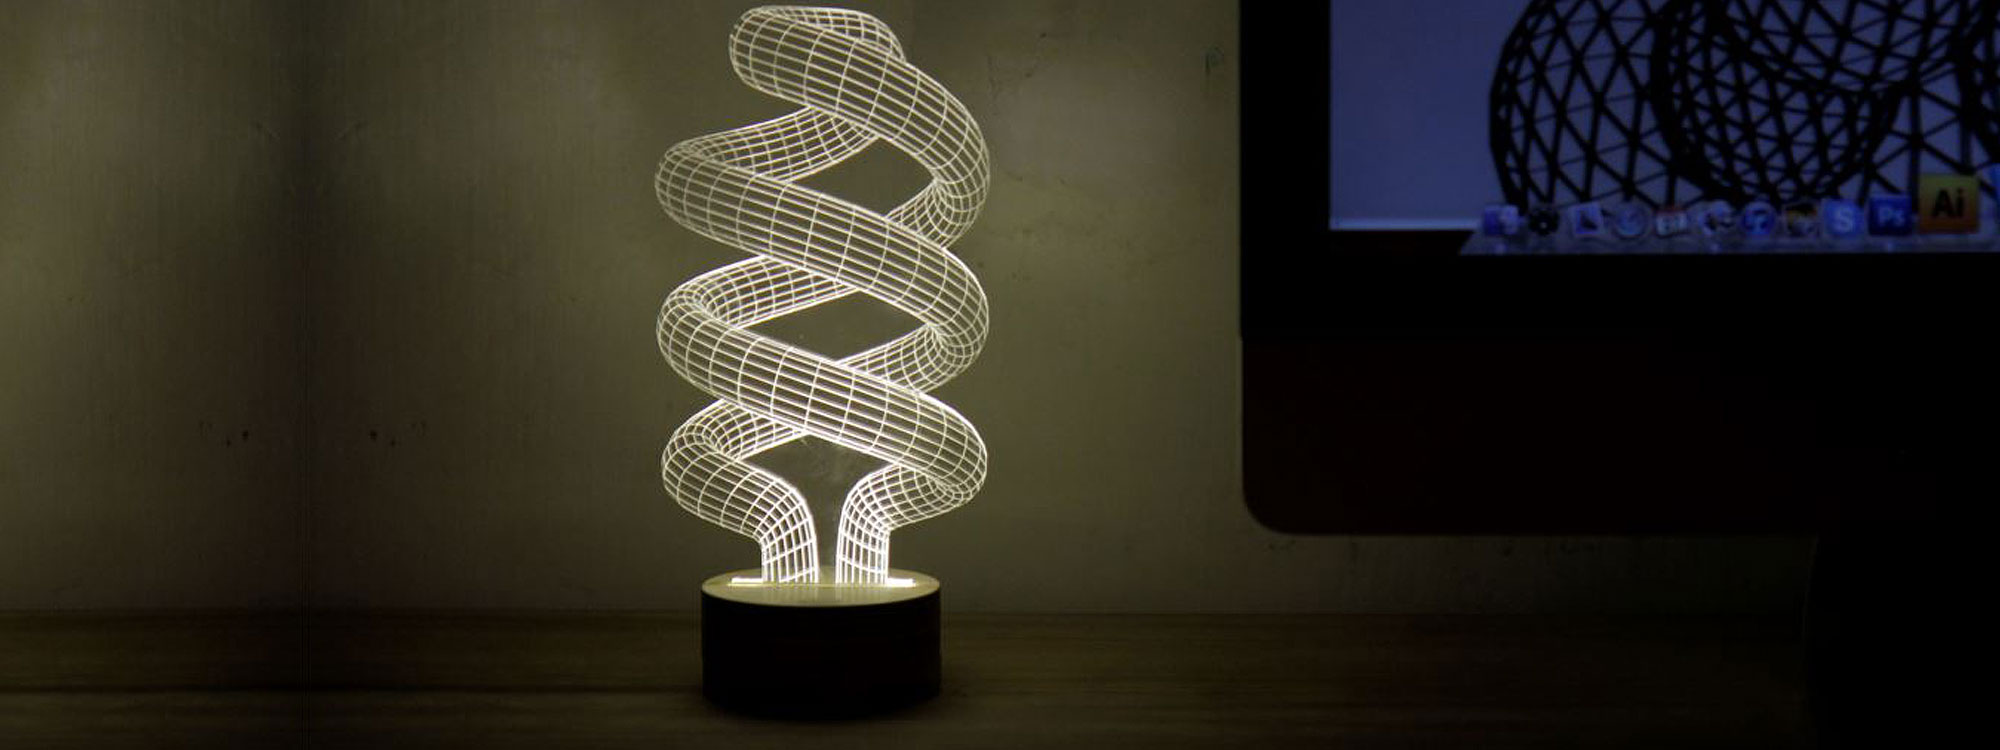 Spiral LED Desk Lamp From Bulbing Designer LED Lamp Collection By Studio Cheha. Modern Design Table Lamp, Contemporary Floor Lamp, Designer Pendant Light Collection - Unique Designer Gift